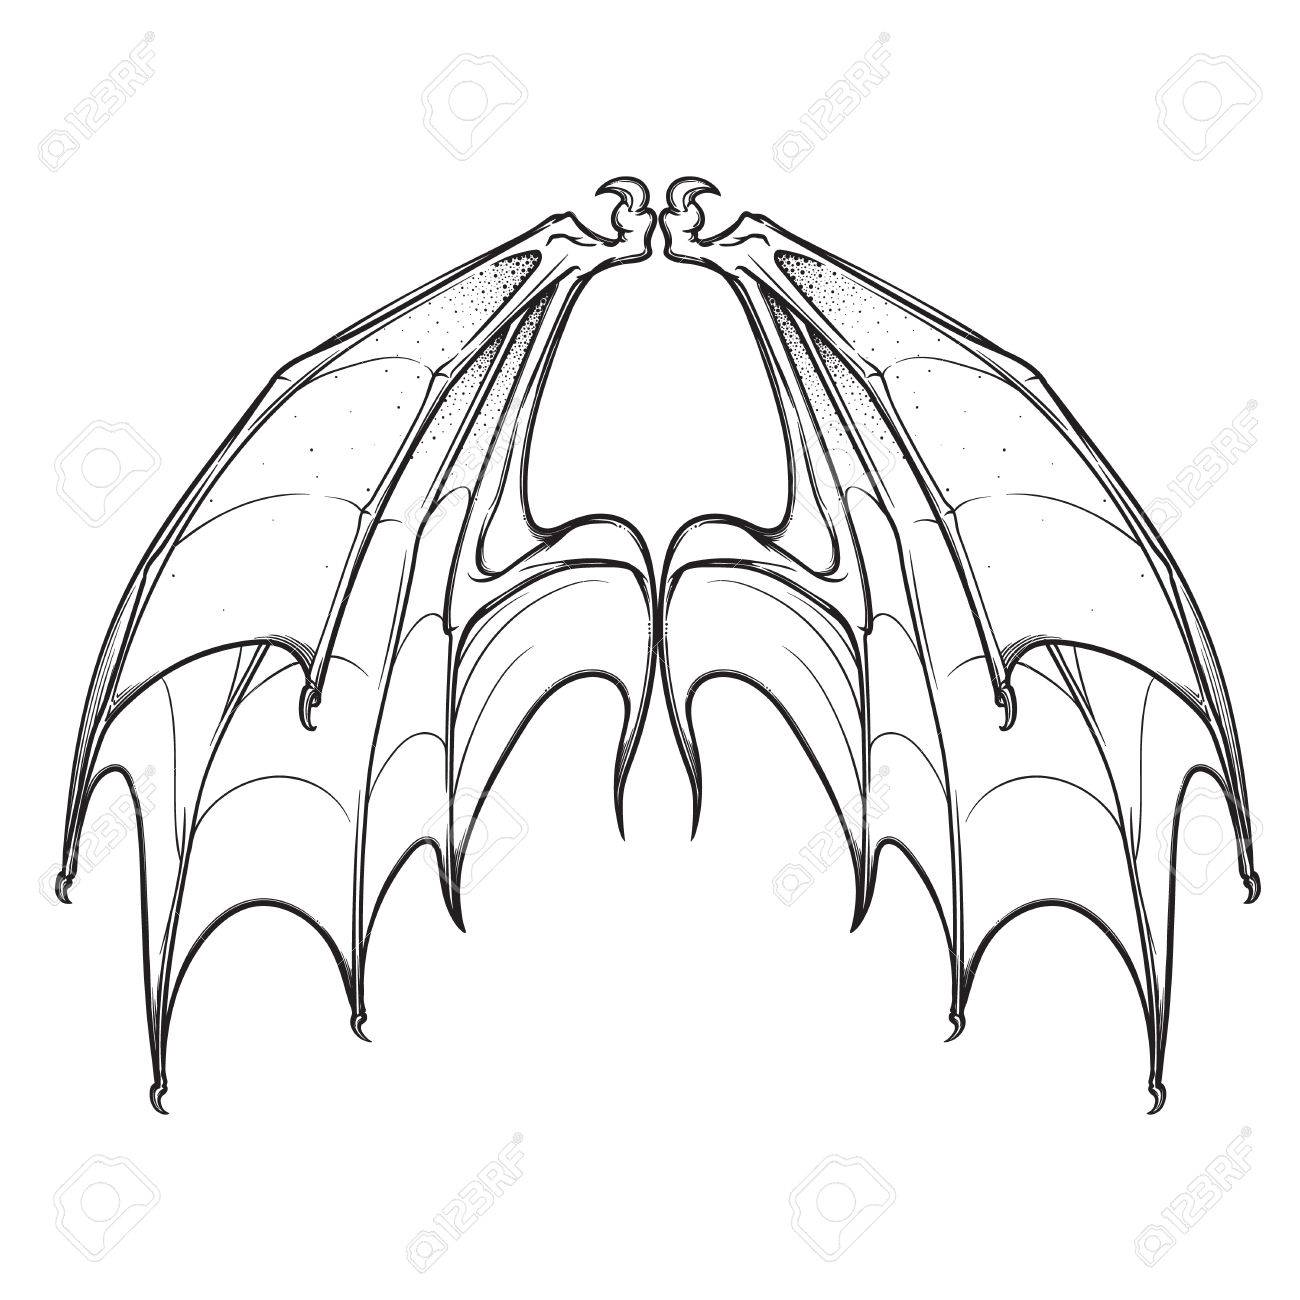 1300x1300 Bat Membranout Wings Sketch. Halloween Concept Art. Isolated